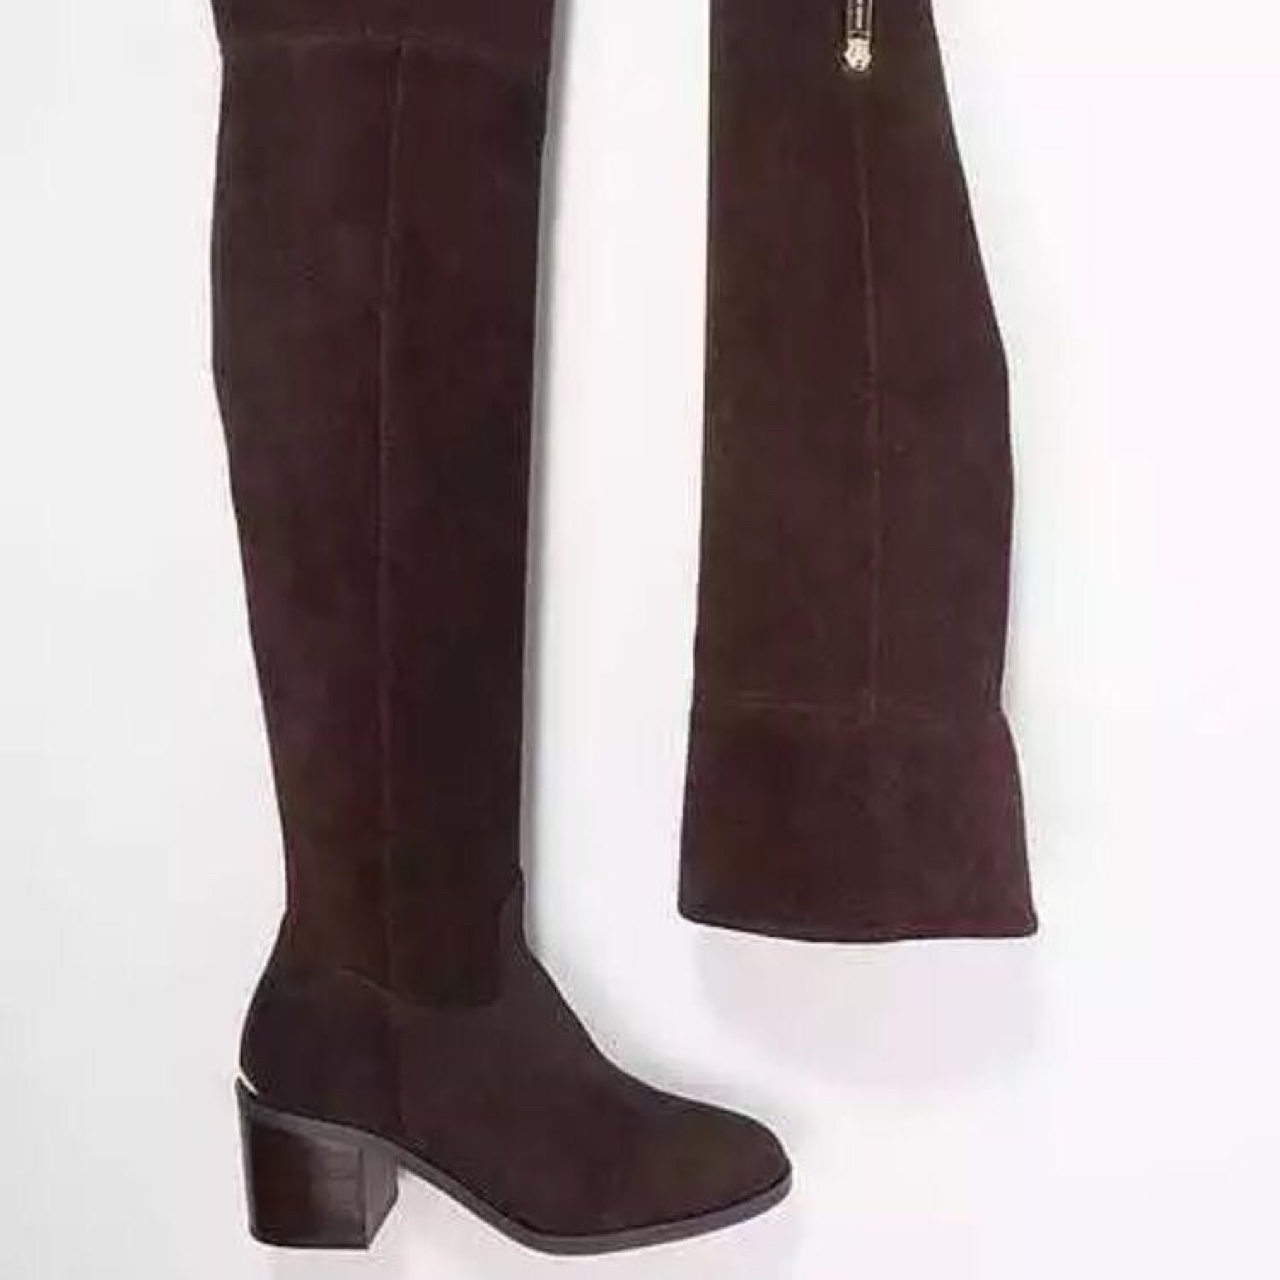 cheapest price outlet store brand new Michael Kors thigh high suede boots size 5! Only... - Depop